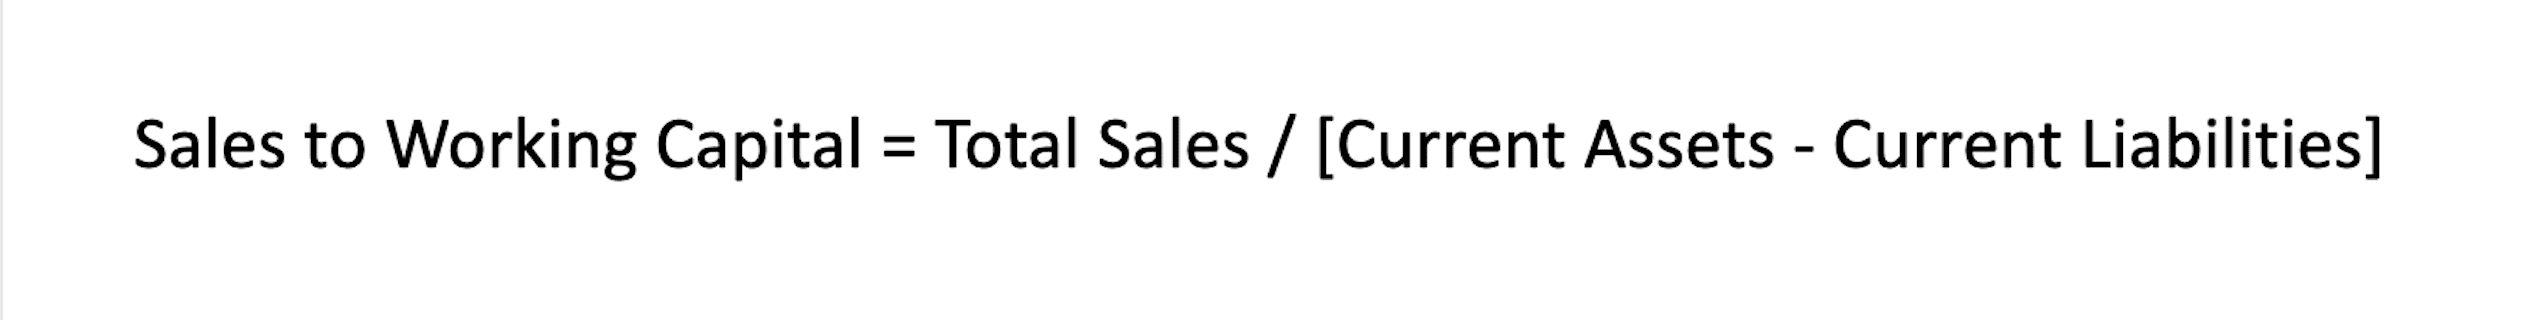 Sales to working capital ratio equation